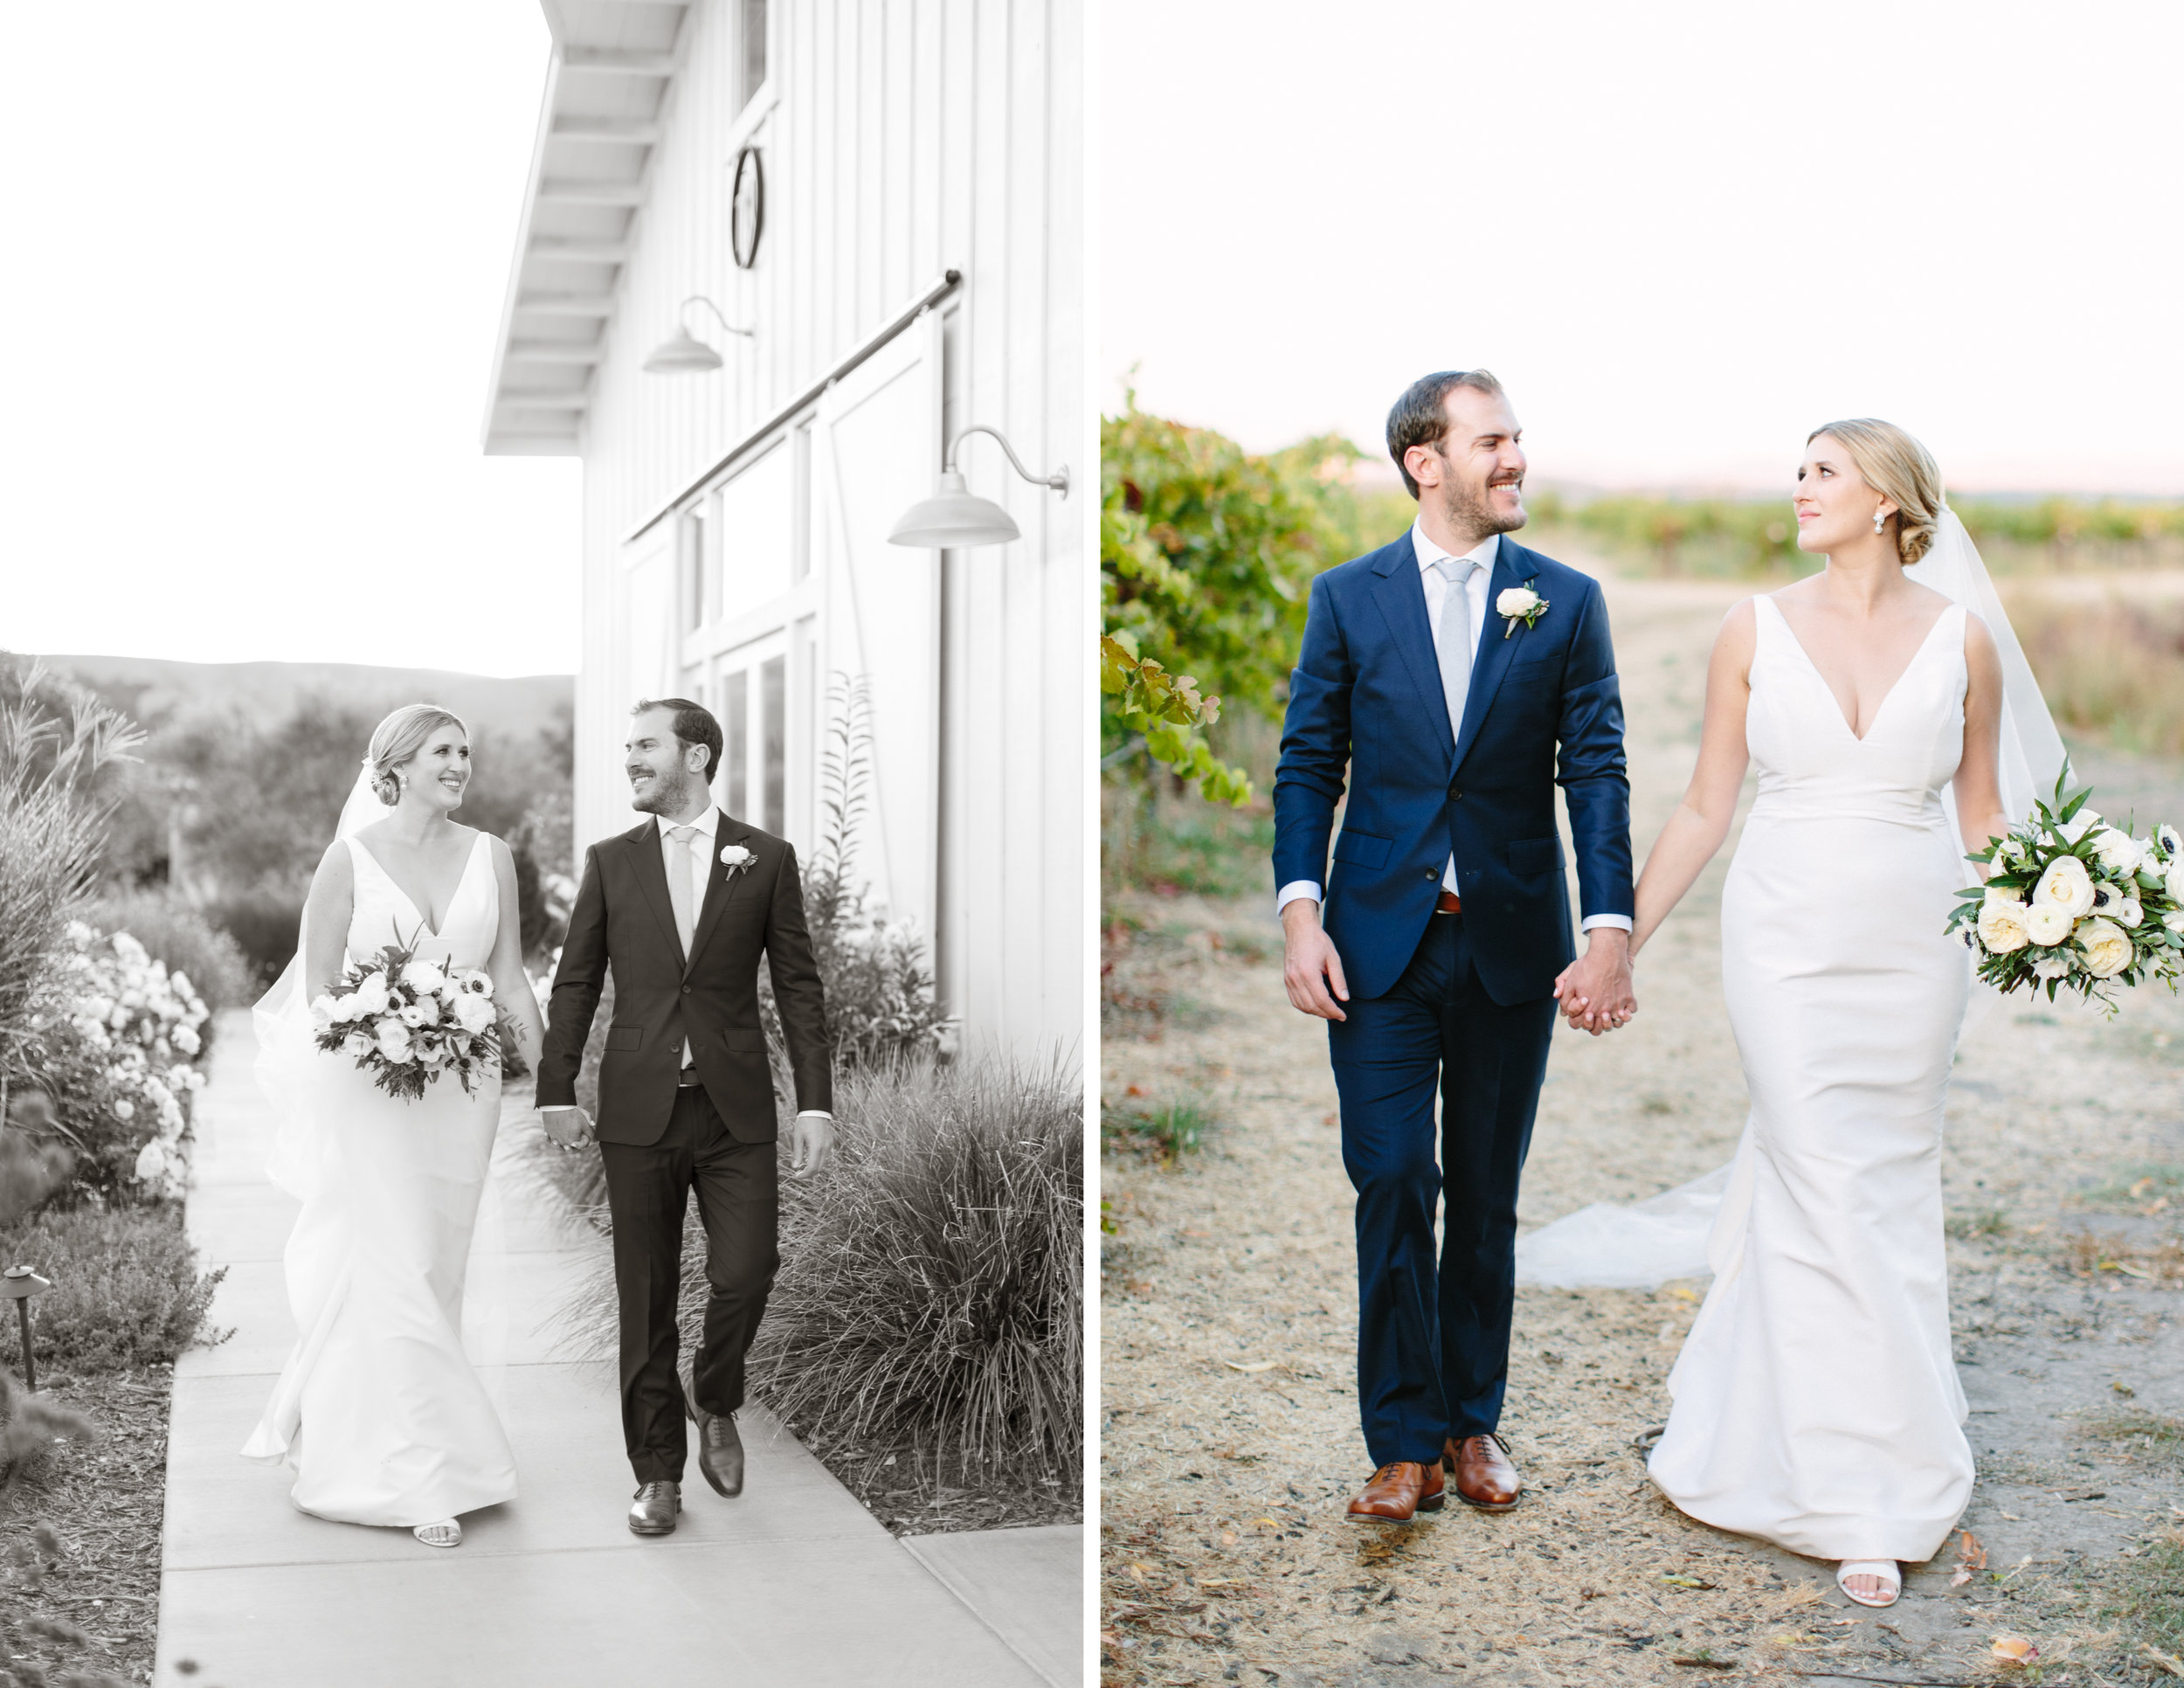 sonoma modern barn wedding 13.jpg